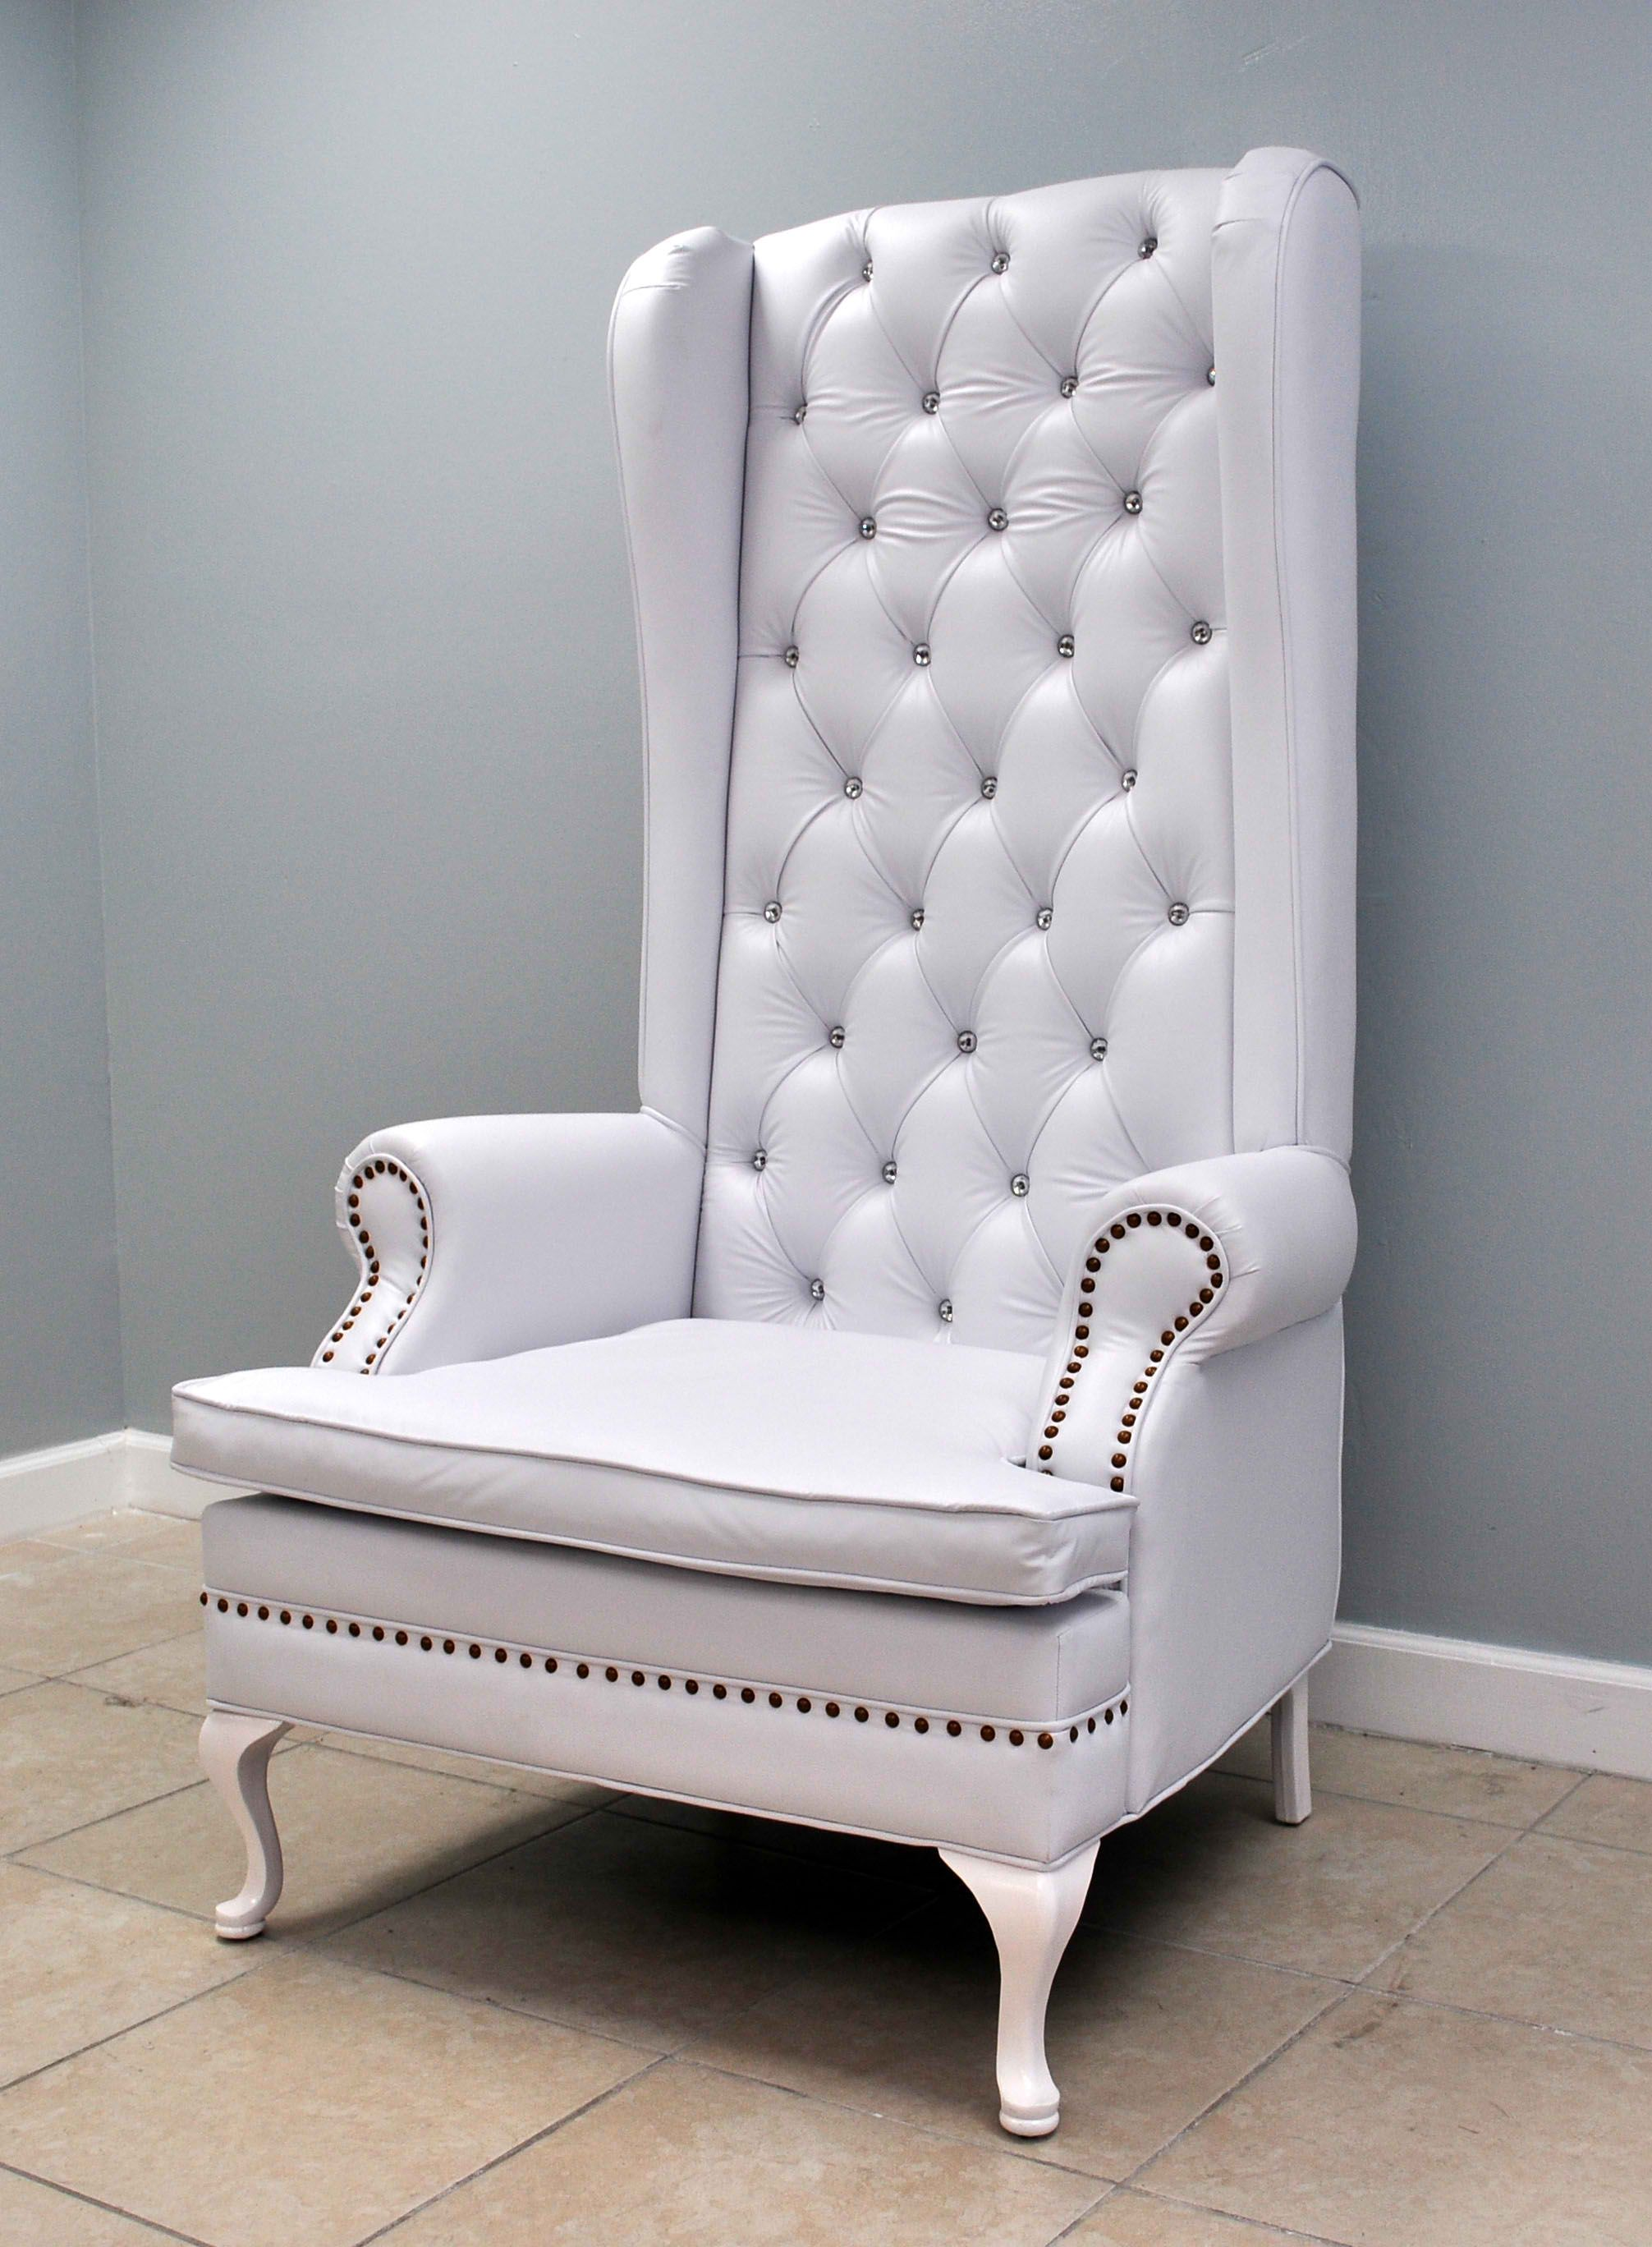 baby throne chair office chairs at target white shower it 39s a boy pinterest